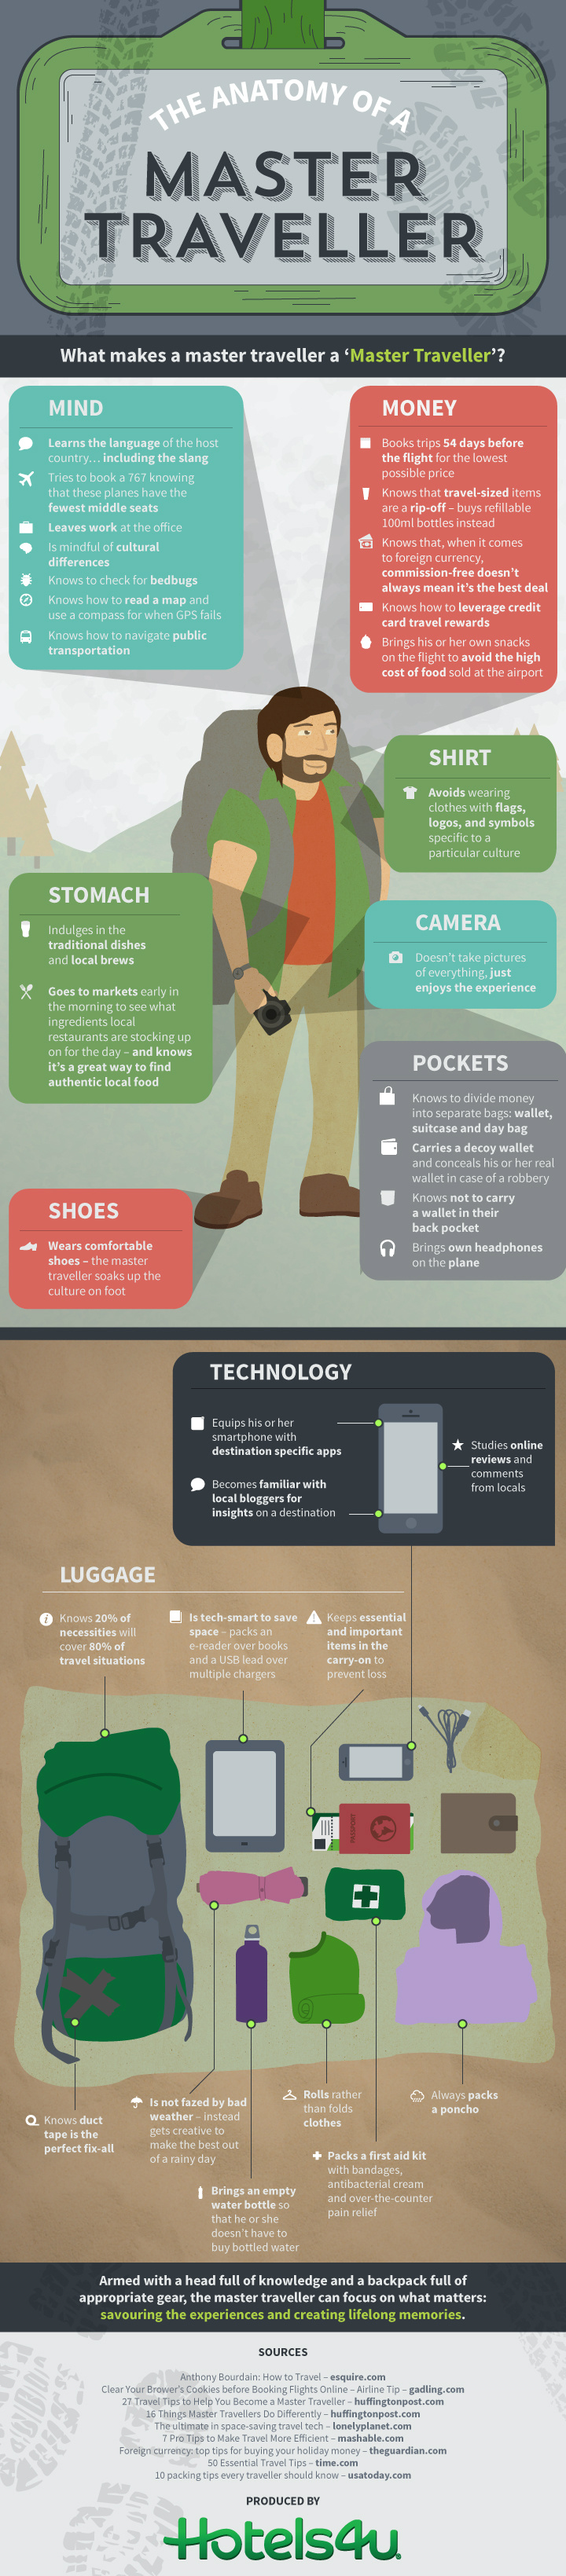 Anatomy of the Traveller [Infographic]